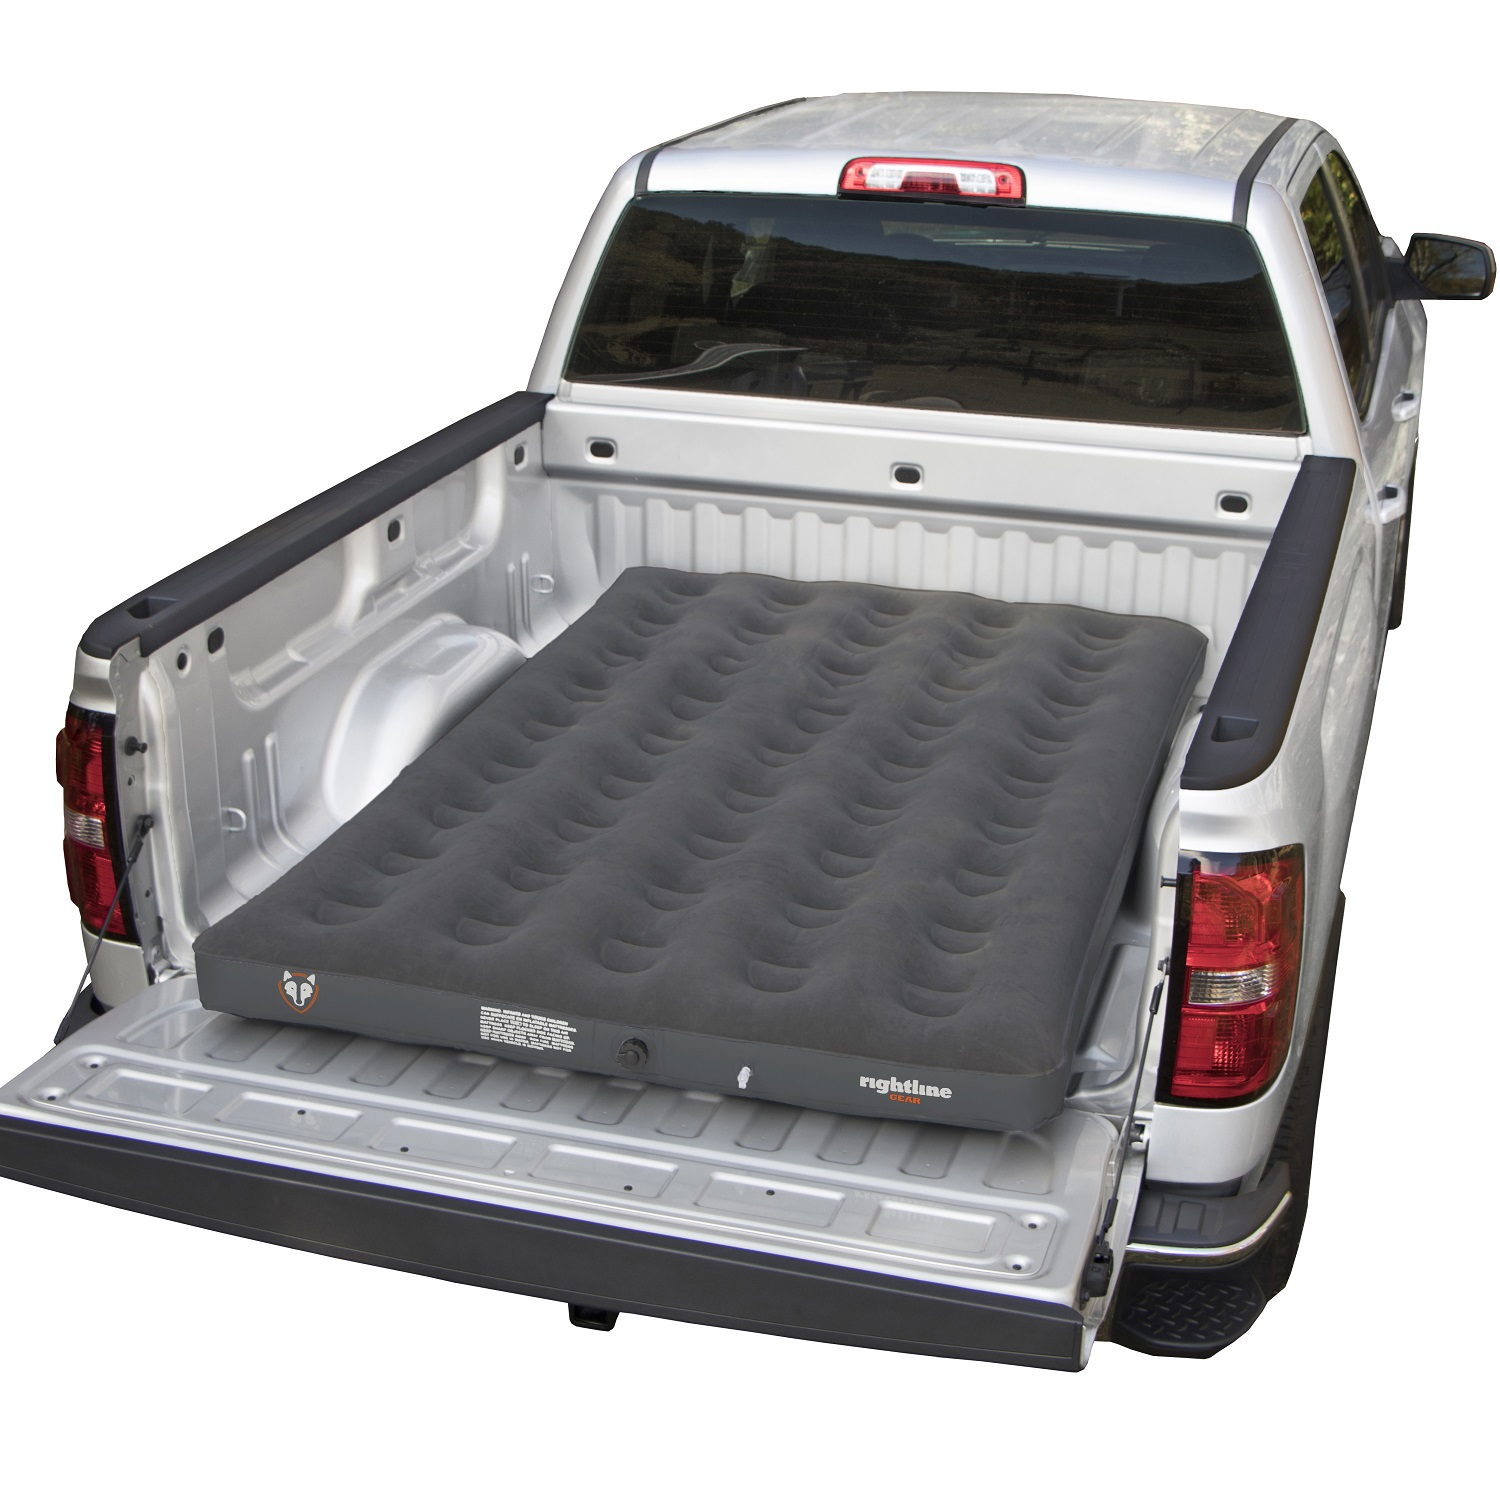 Rightline Mid Size Truck Bed Air Mattress (5ft to 6ft)